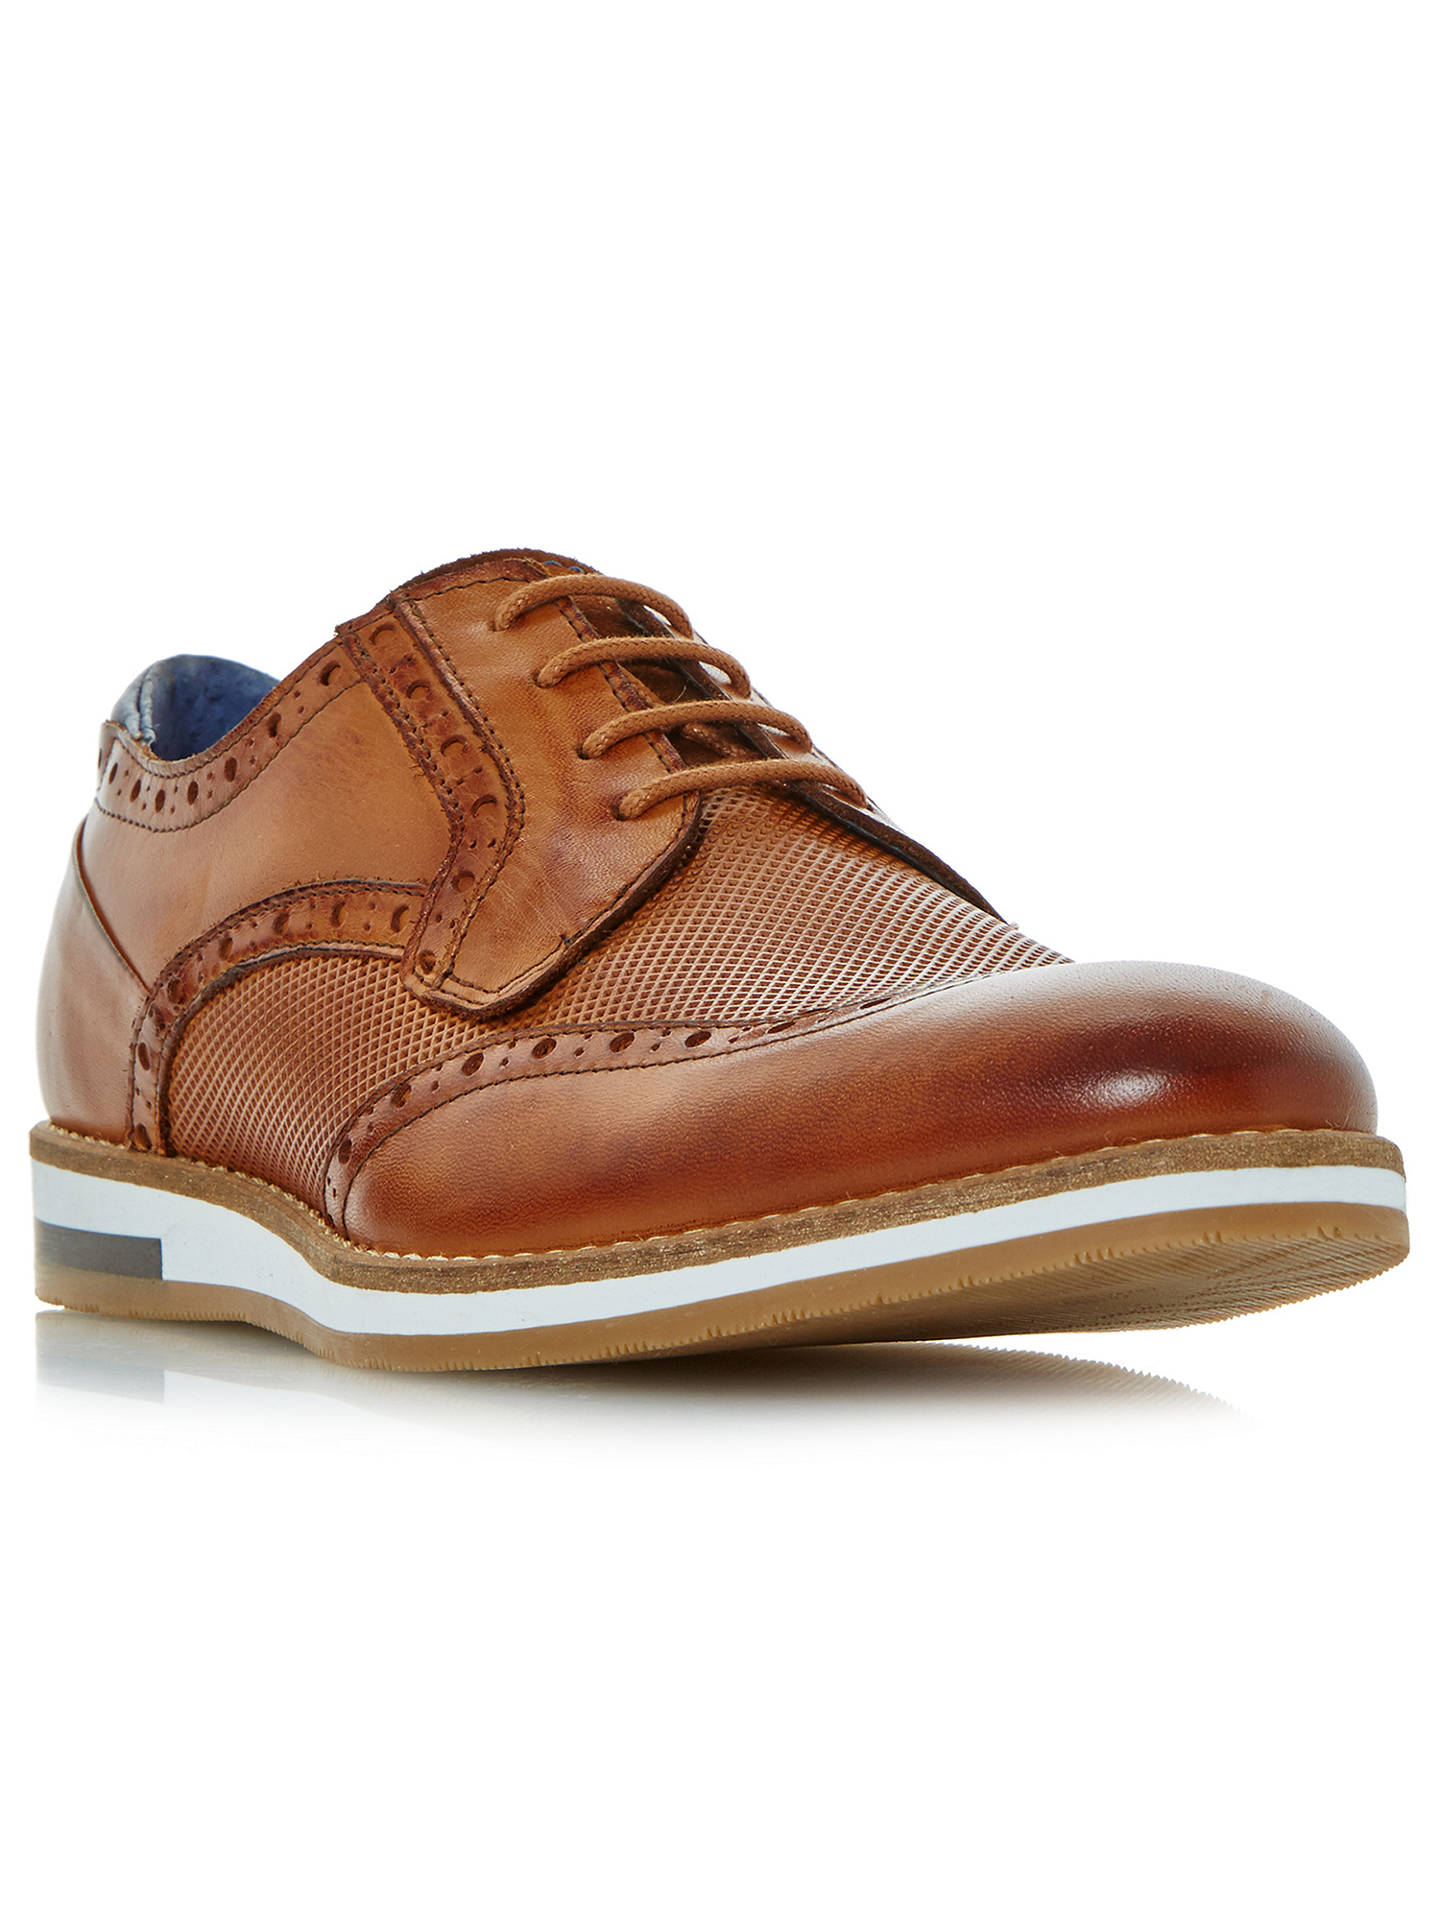 Buy Bertie Baker Hill Gibson Leather Wingtip Shoes, Tan Leather, 10 Online at johnlewis.com